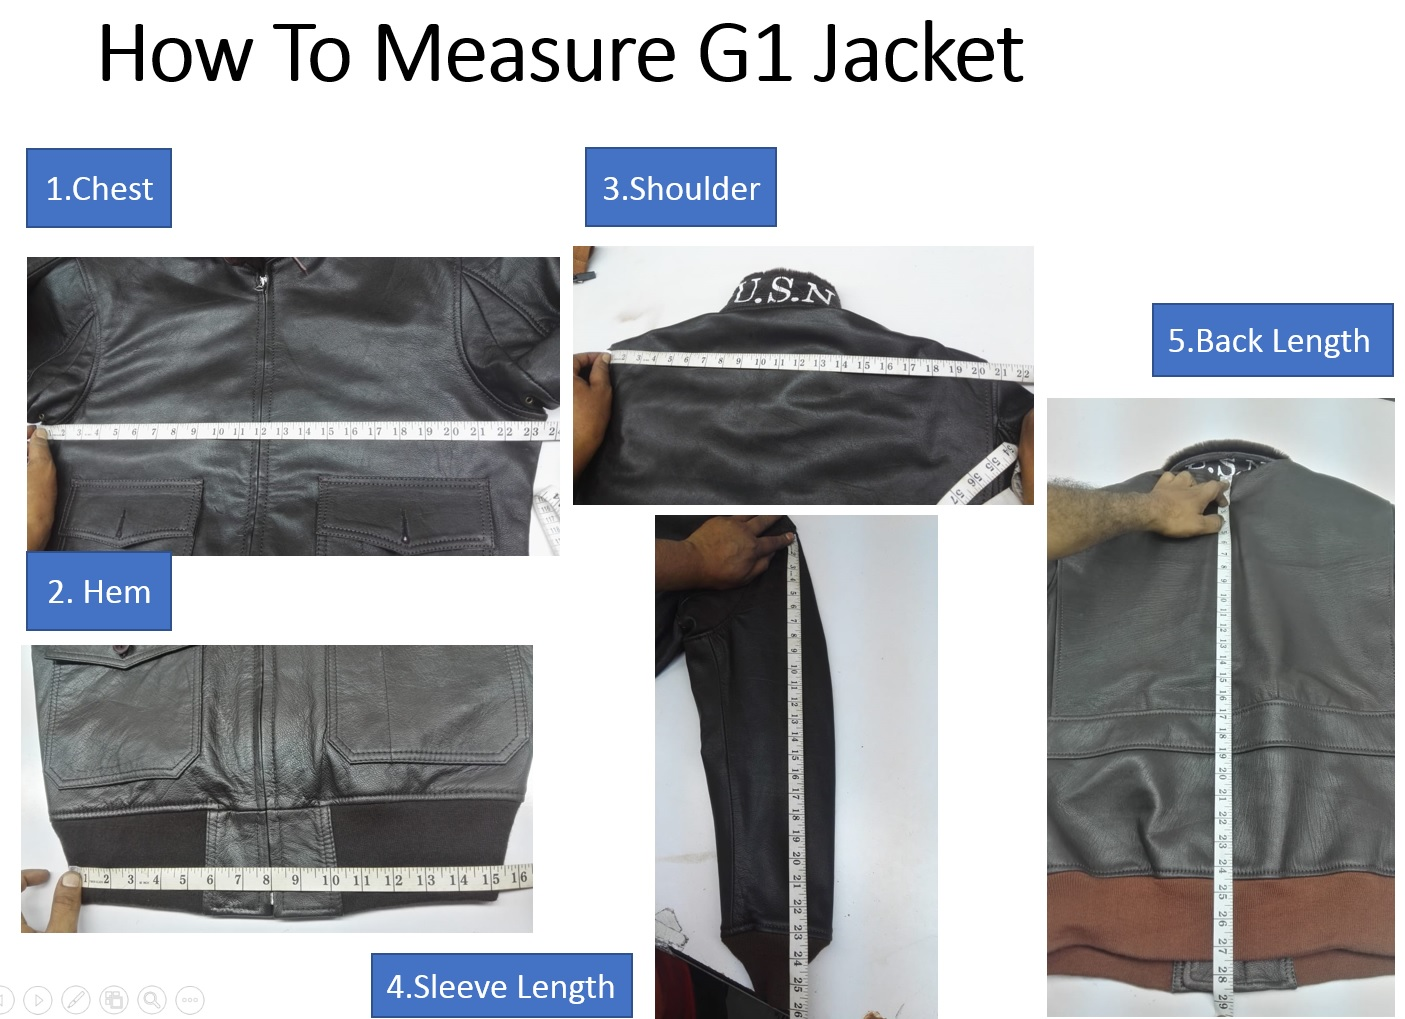 How To measure a G1 Jacket.jpg